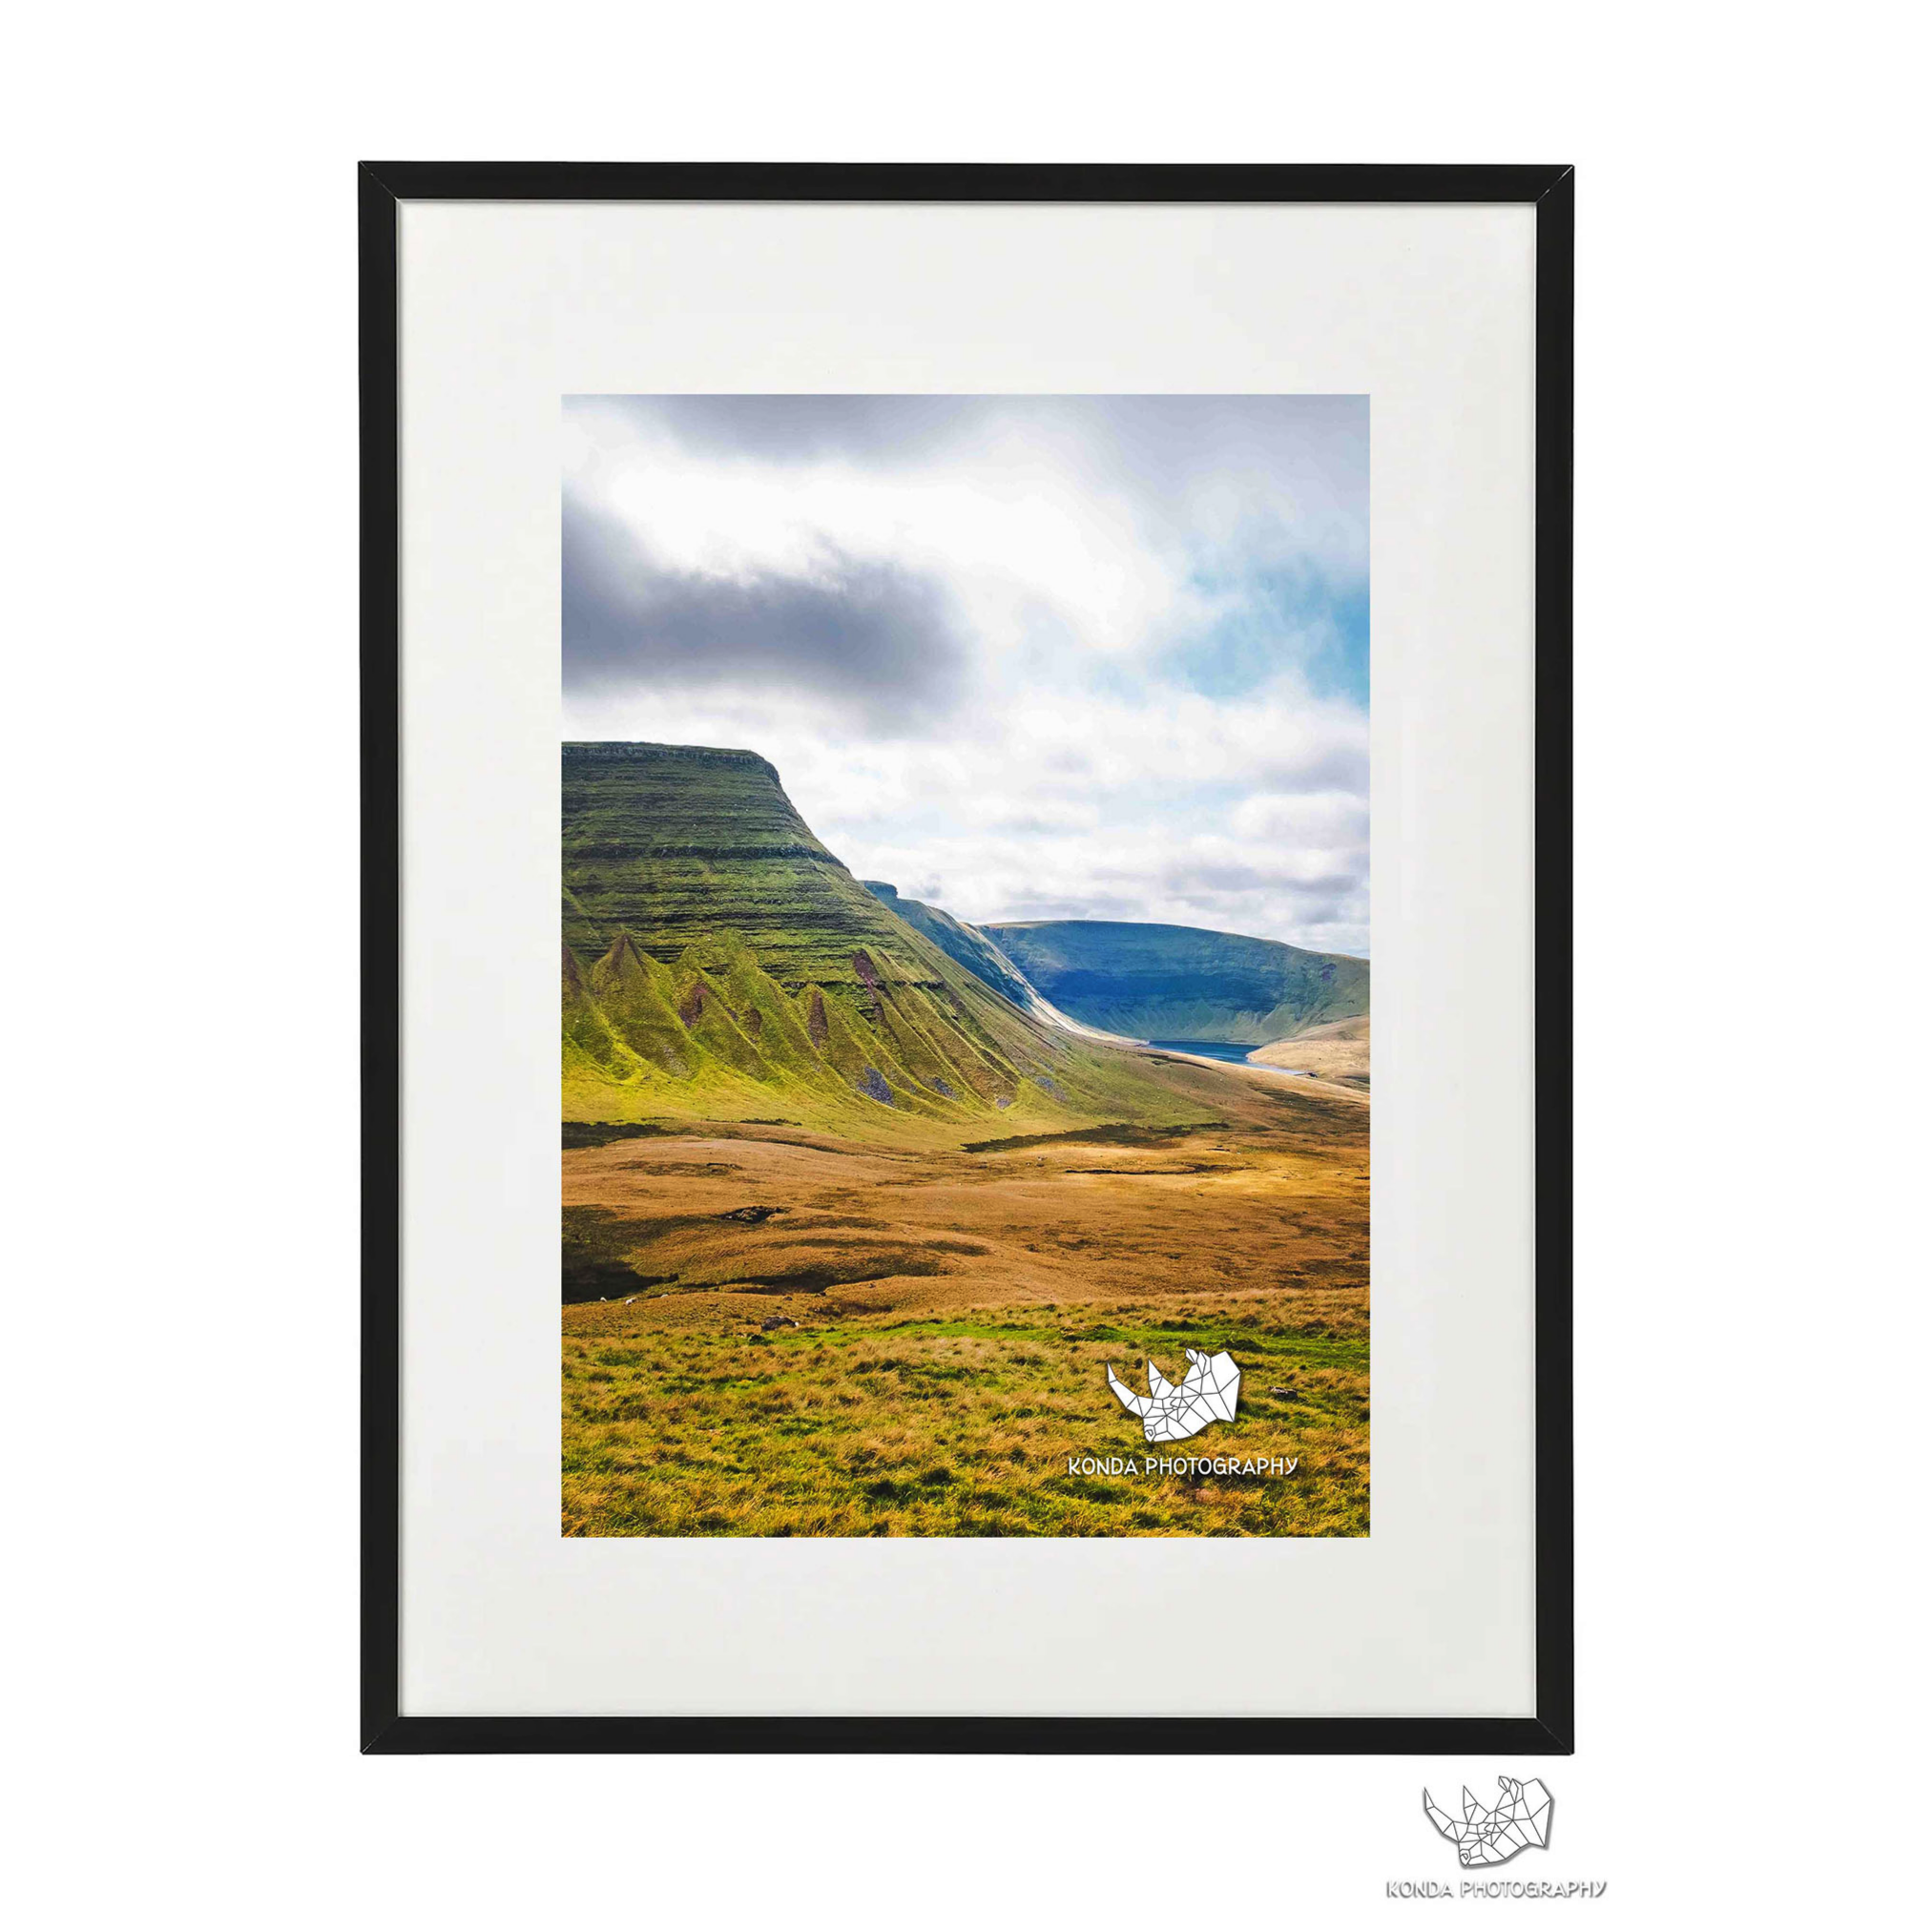 Llyn y Fan Fach, Brecon beacons, Wales